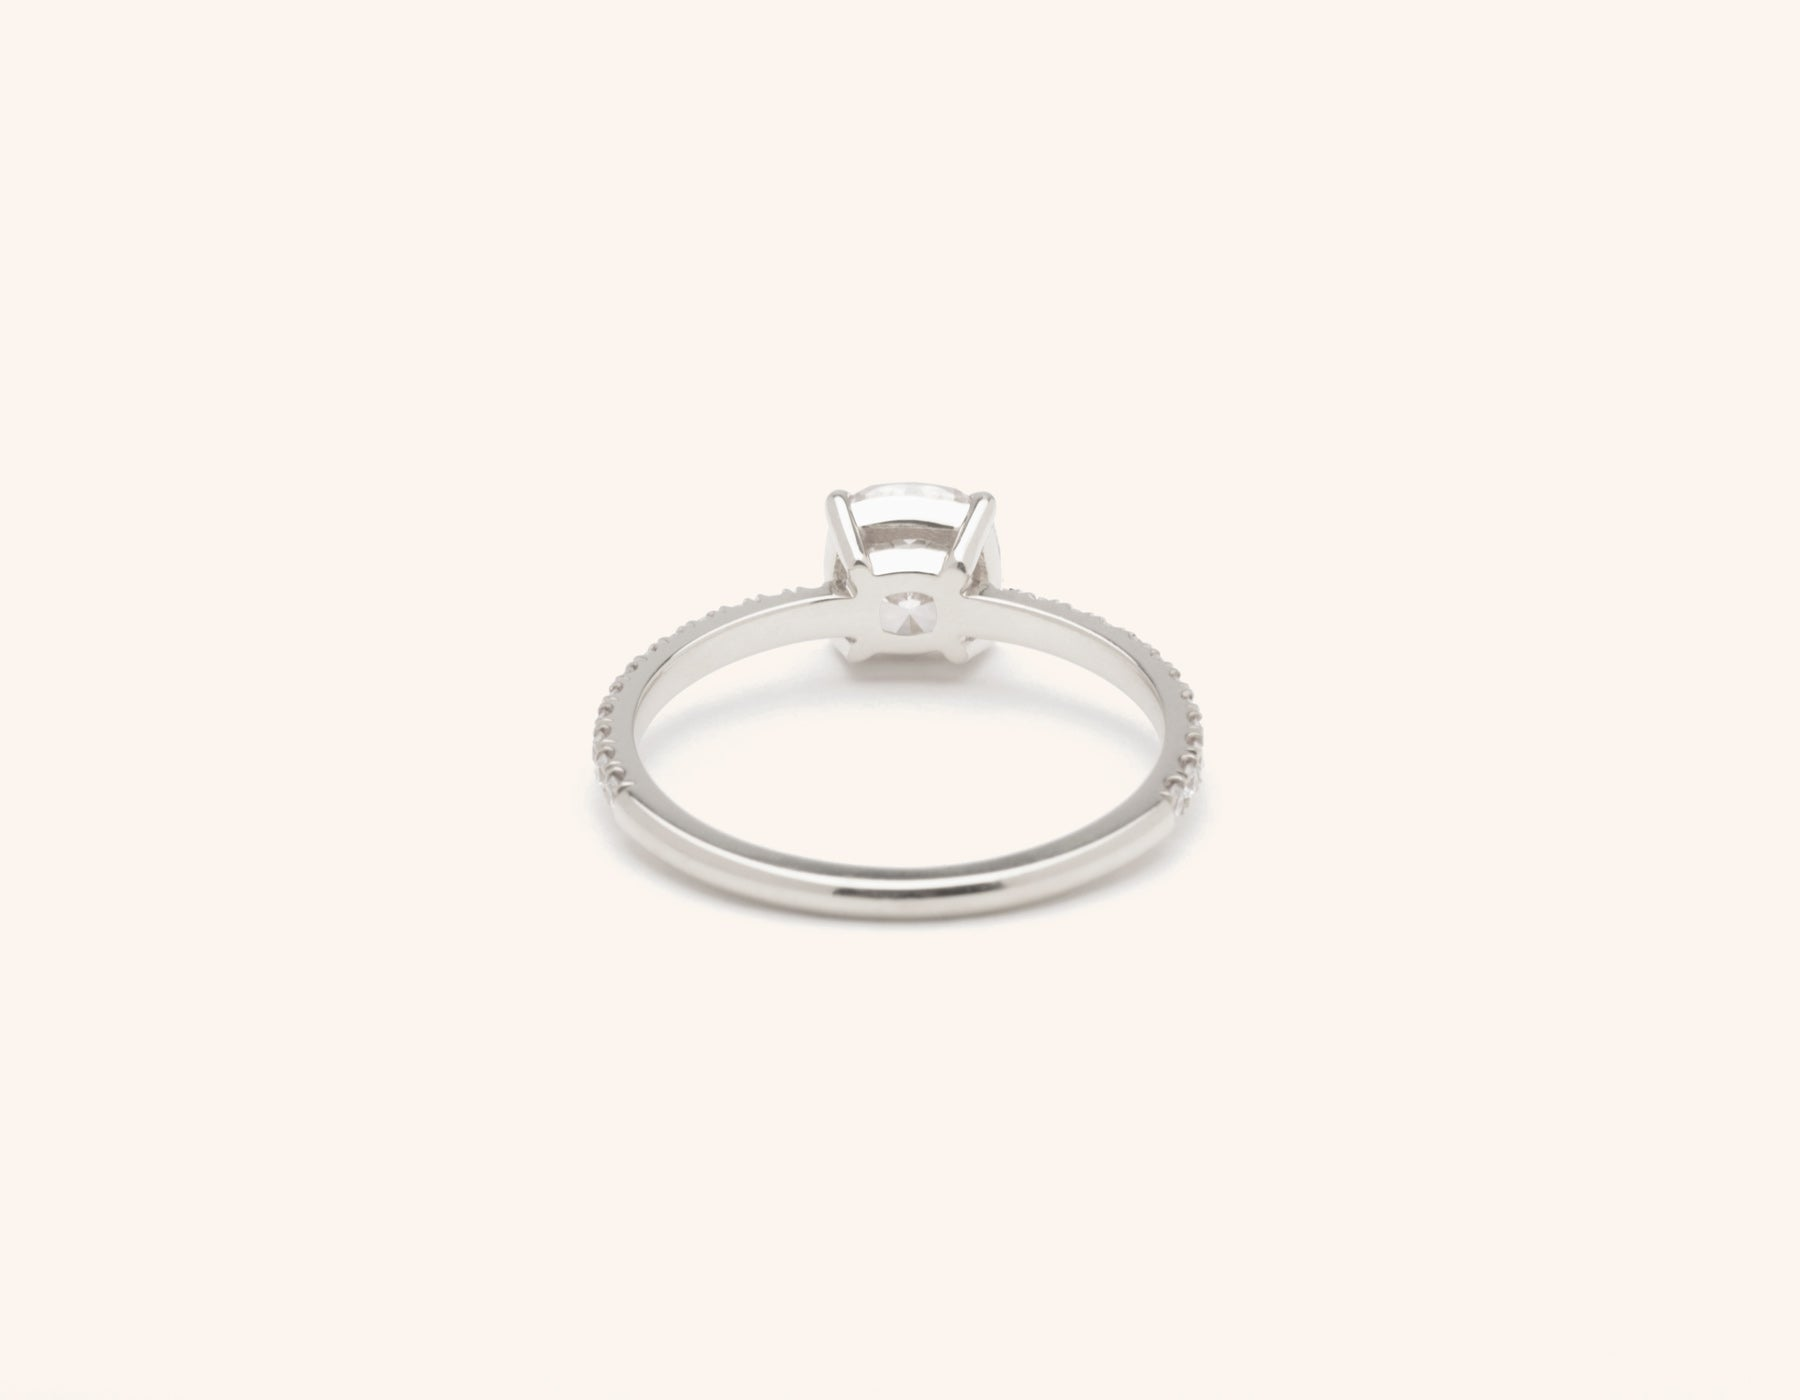 Vrai & Oro platinum Diamond engagement ring The Cushion pave simple classic band